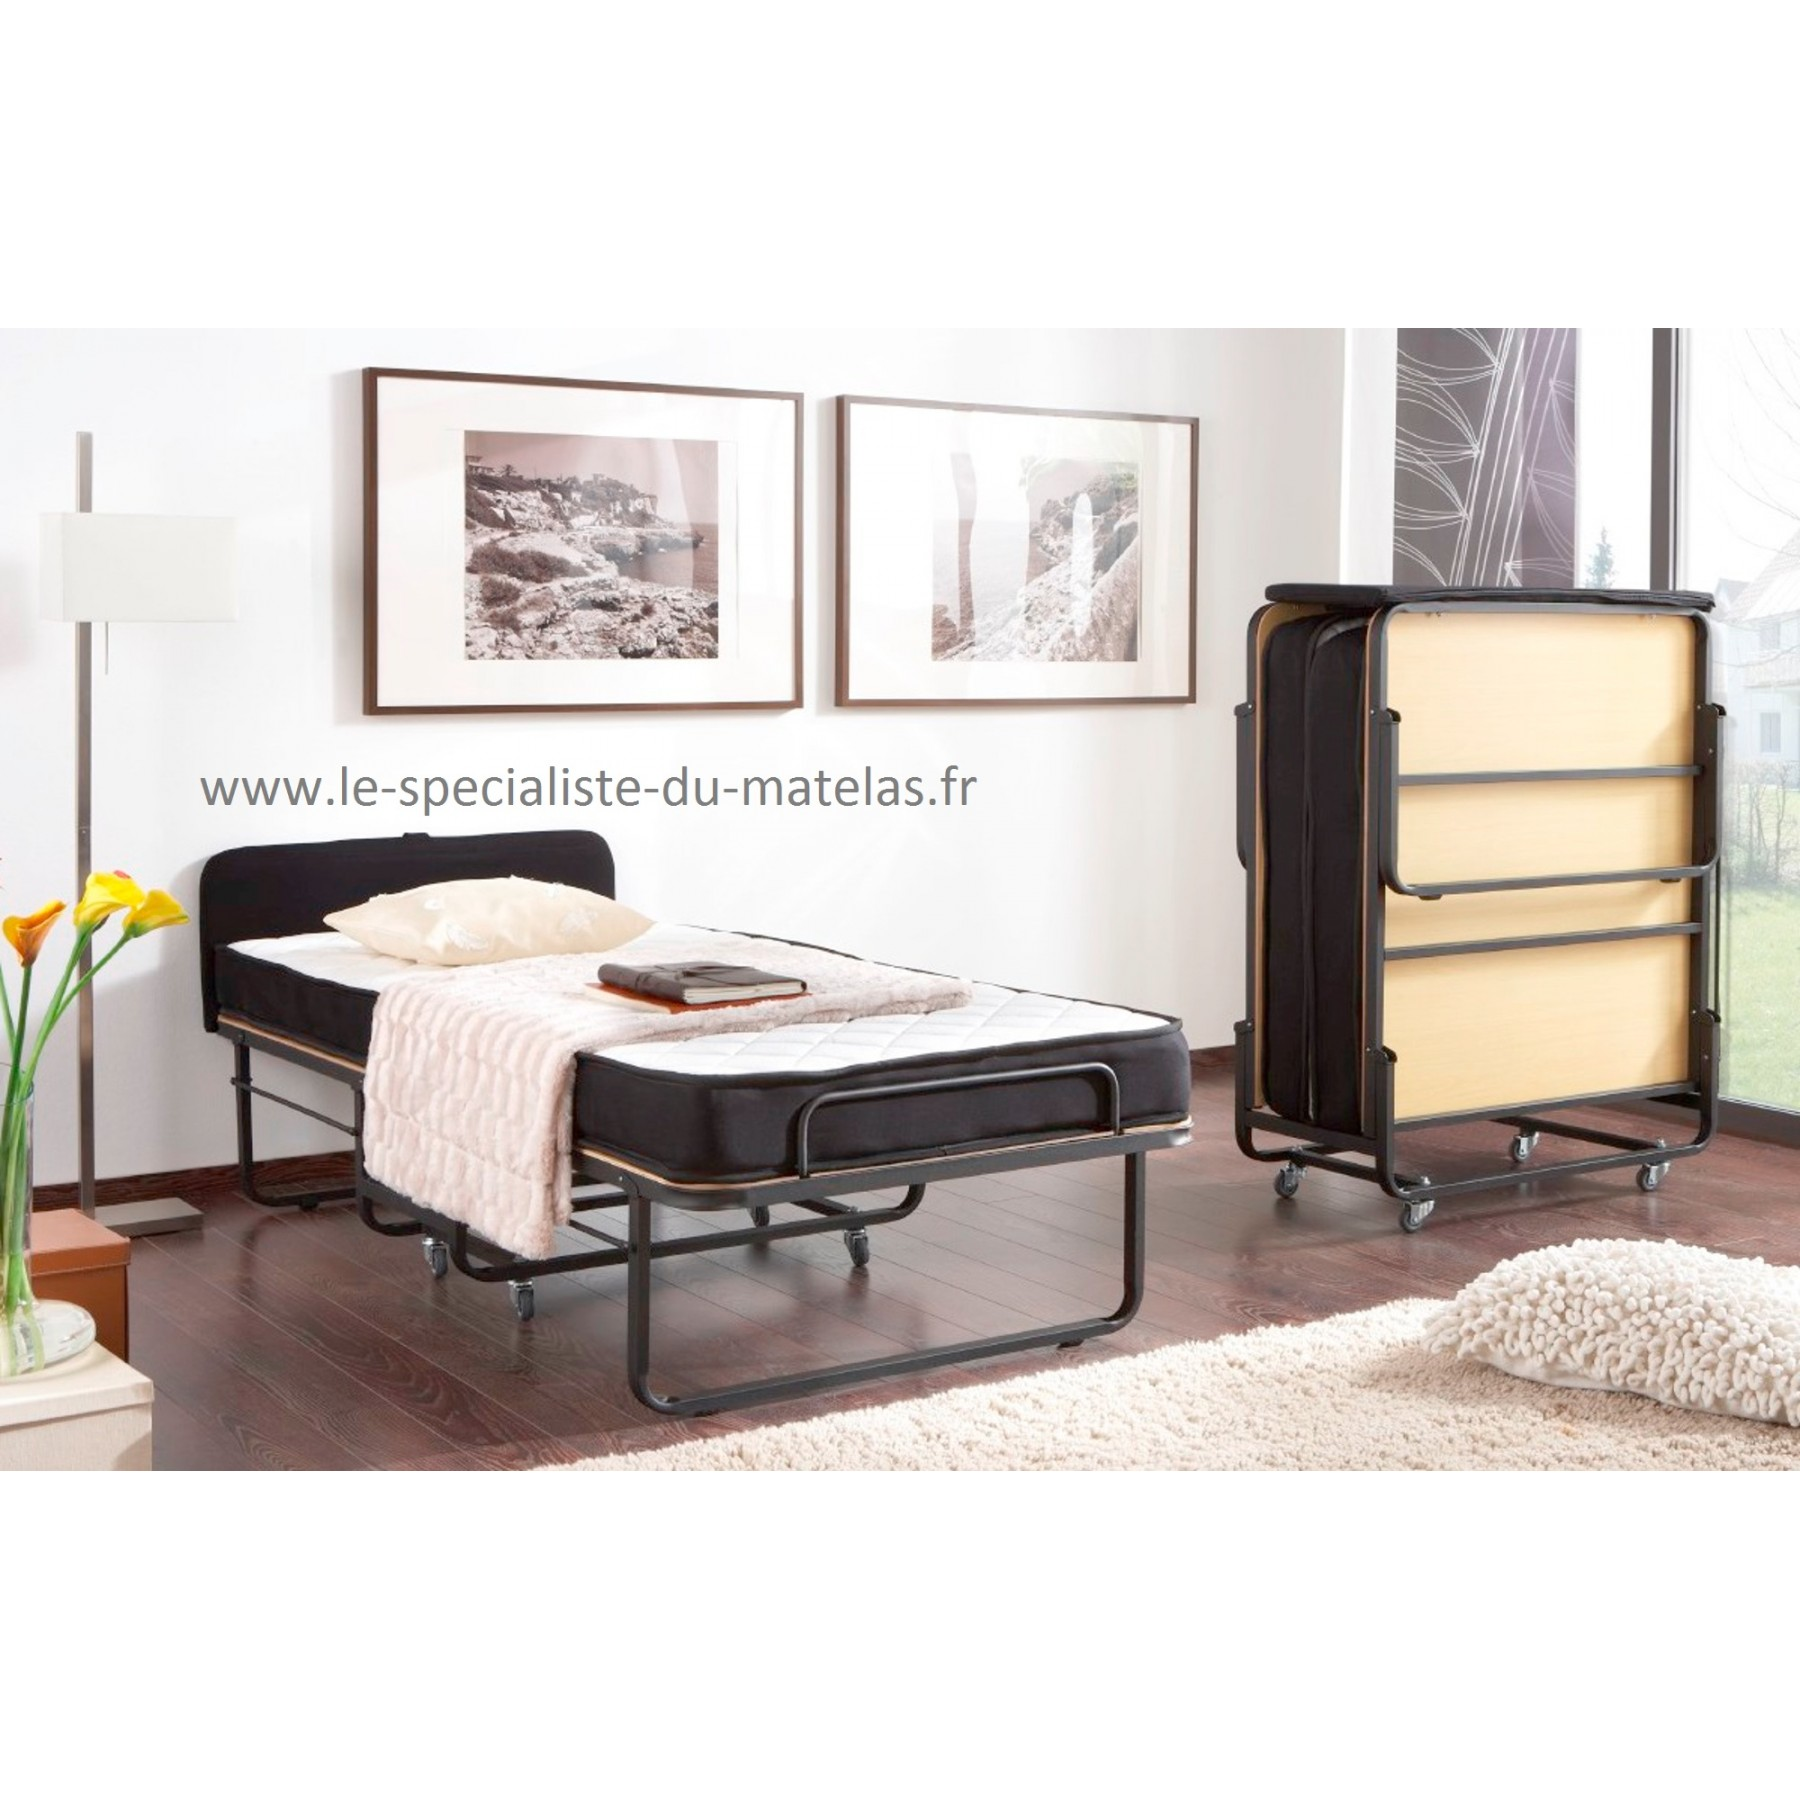 lit pliant avec t te de lit d couvrir au le sp cialiste du matelas. Black Bedroom Furniture Sets. Home Design Ideas